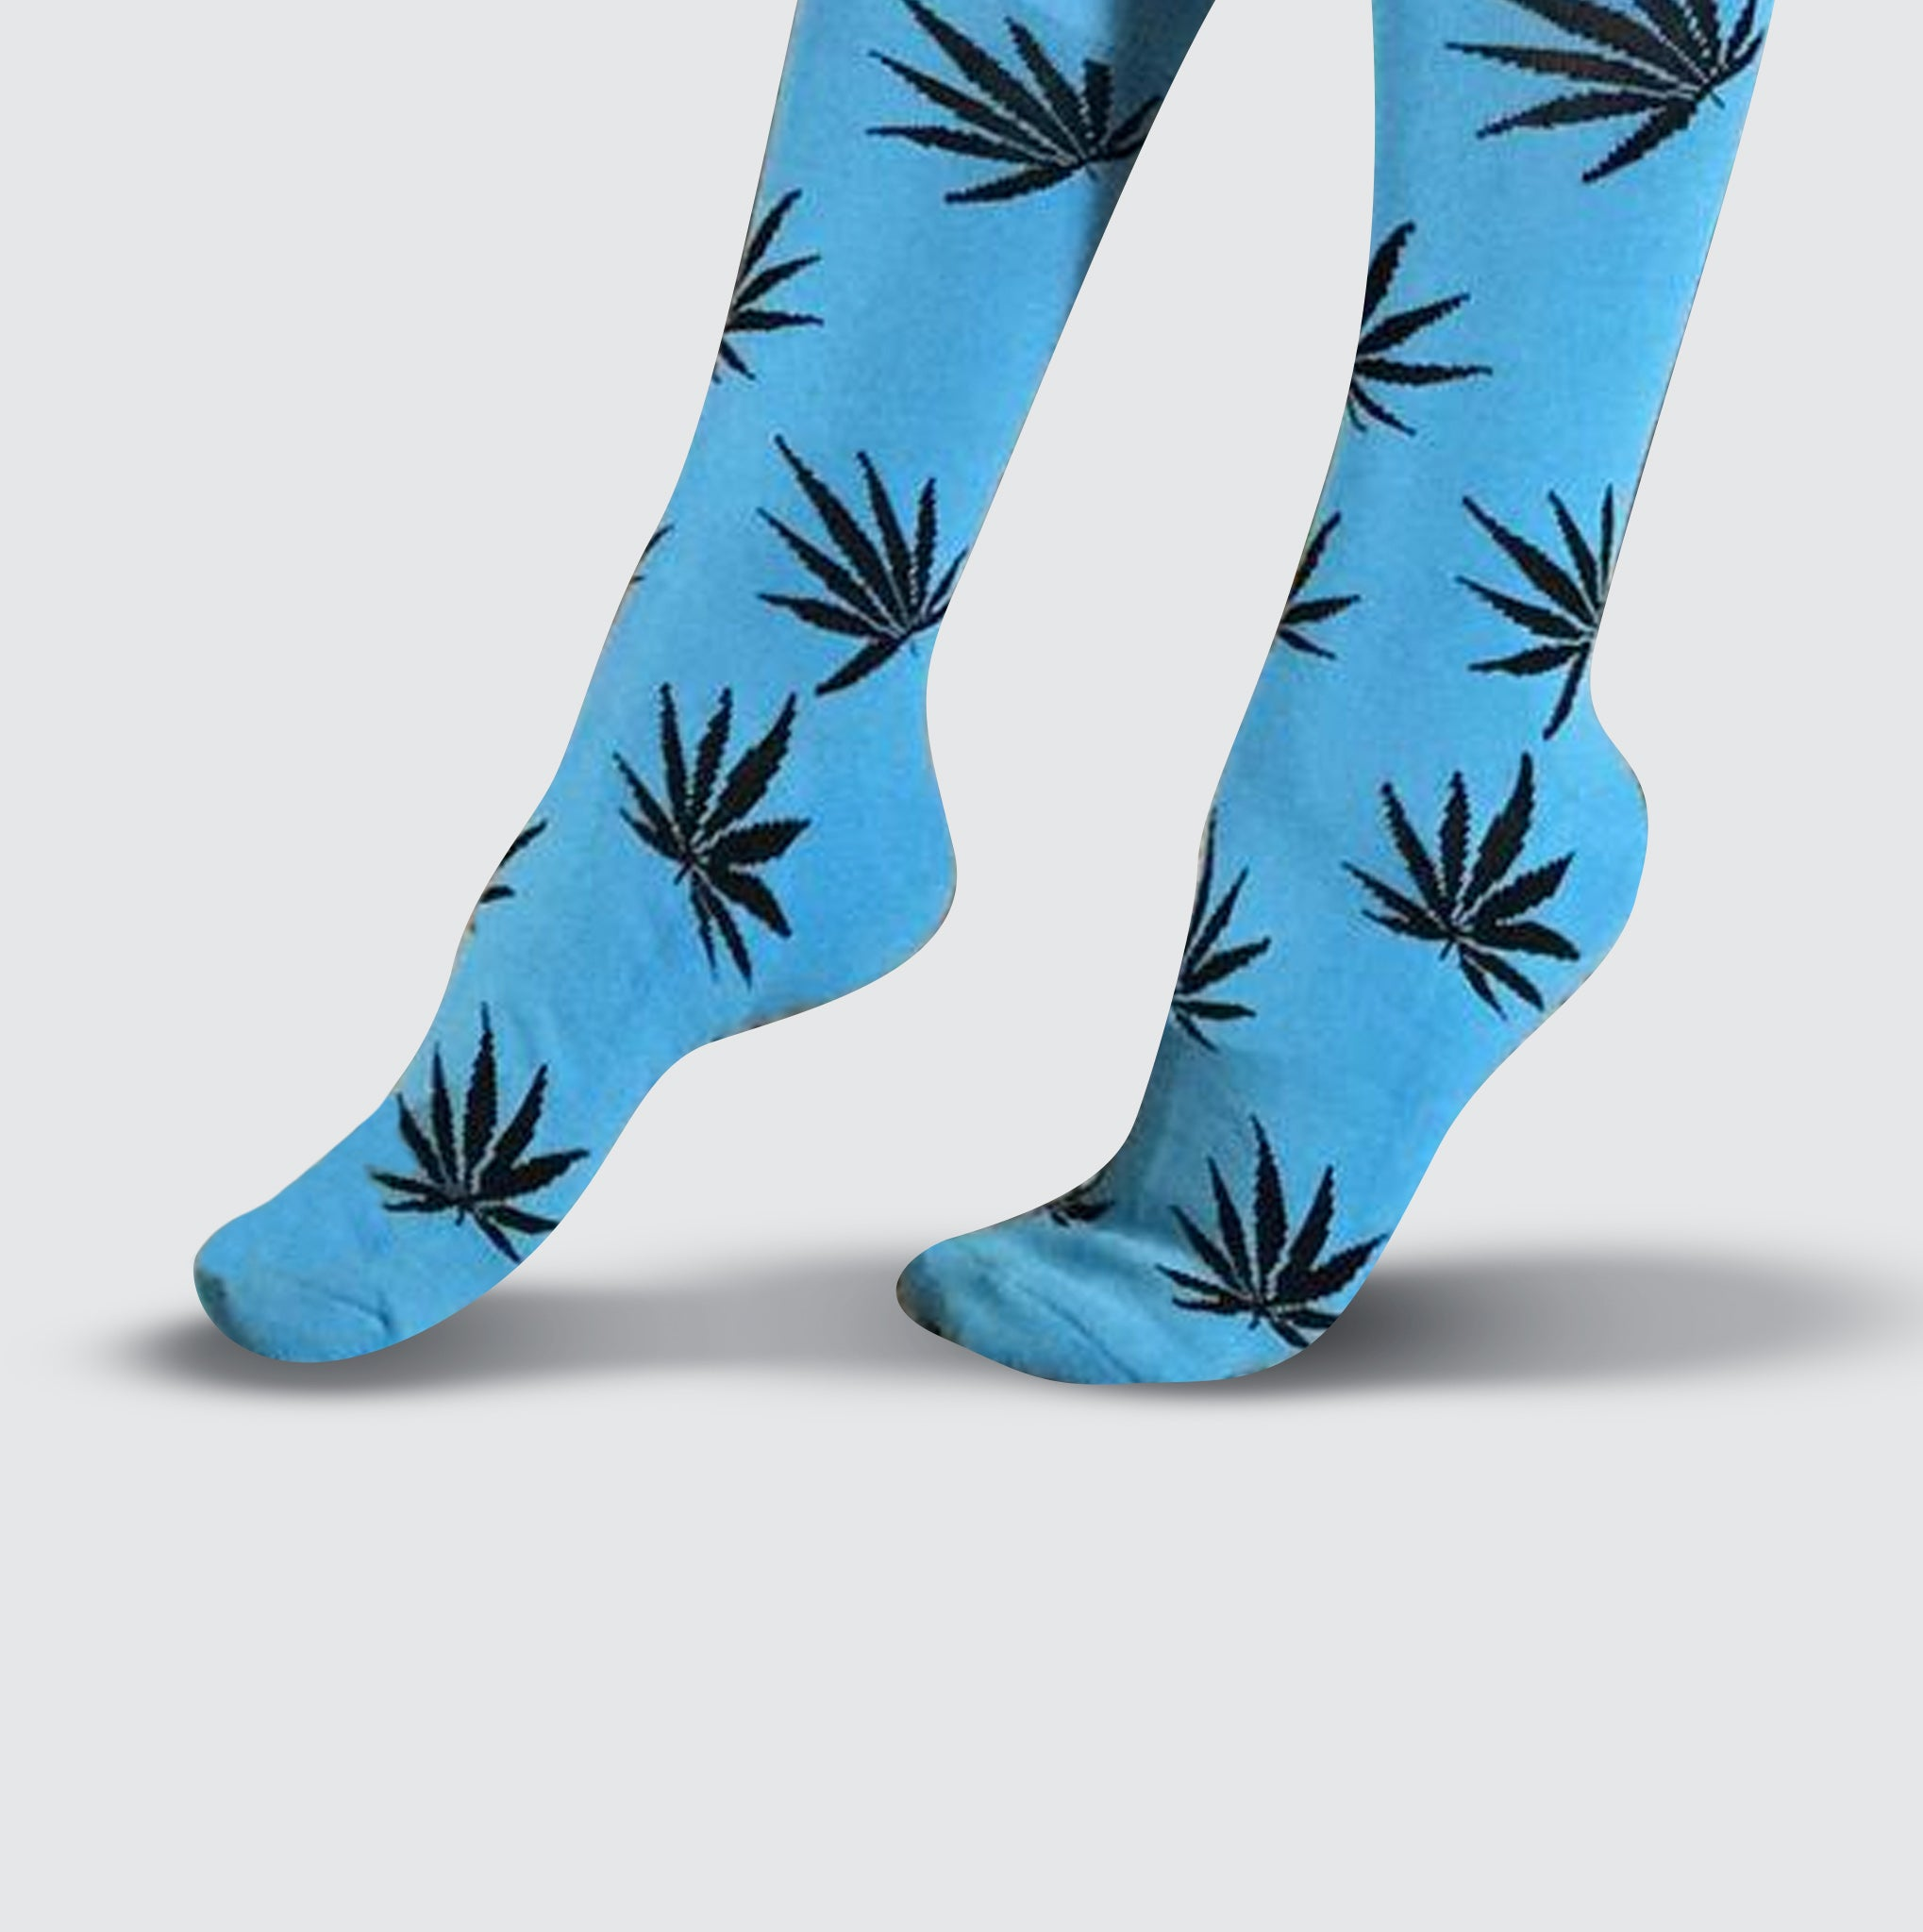 Cannabis Socks - Blue/Black